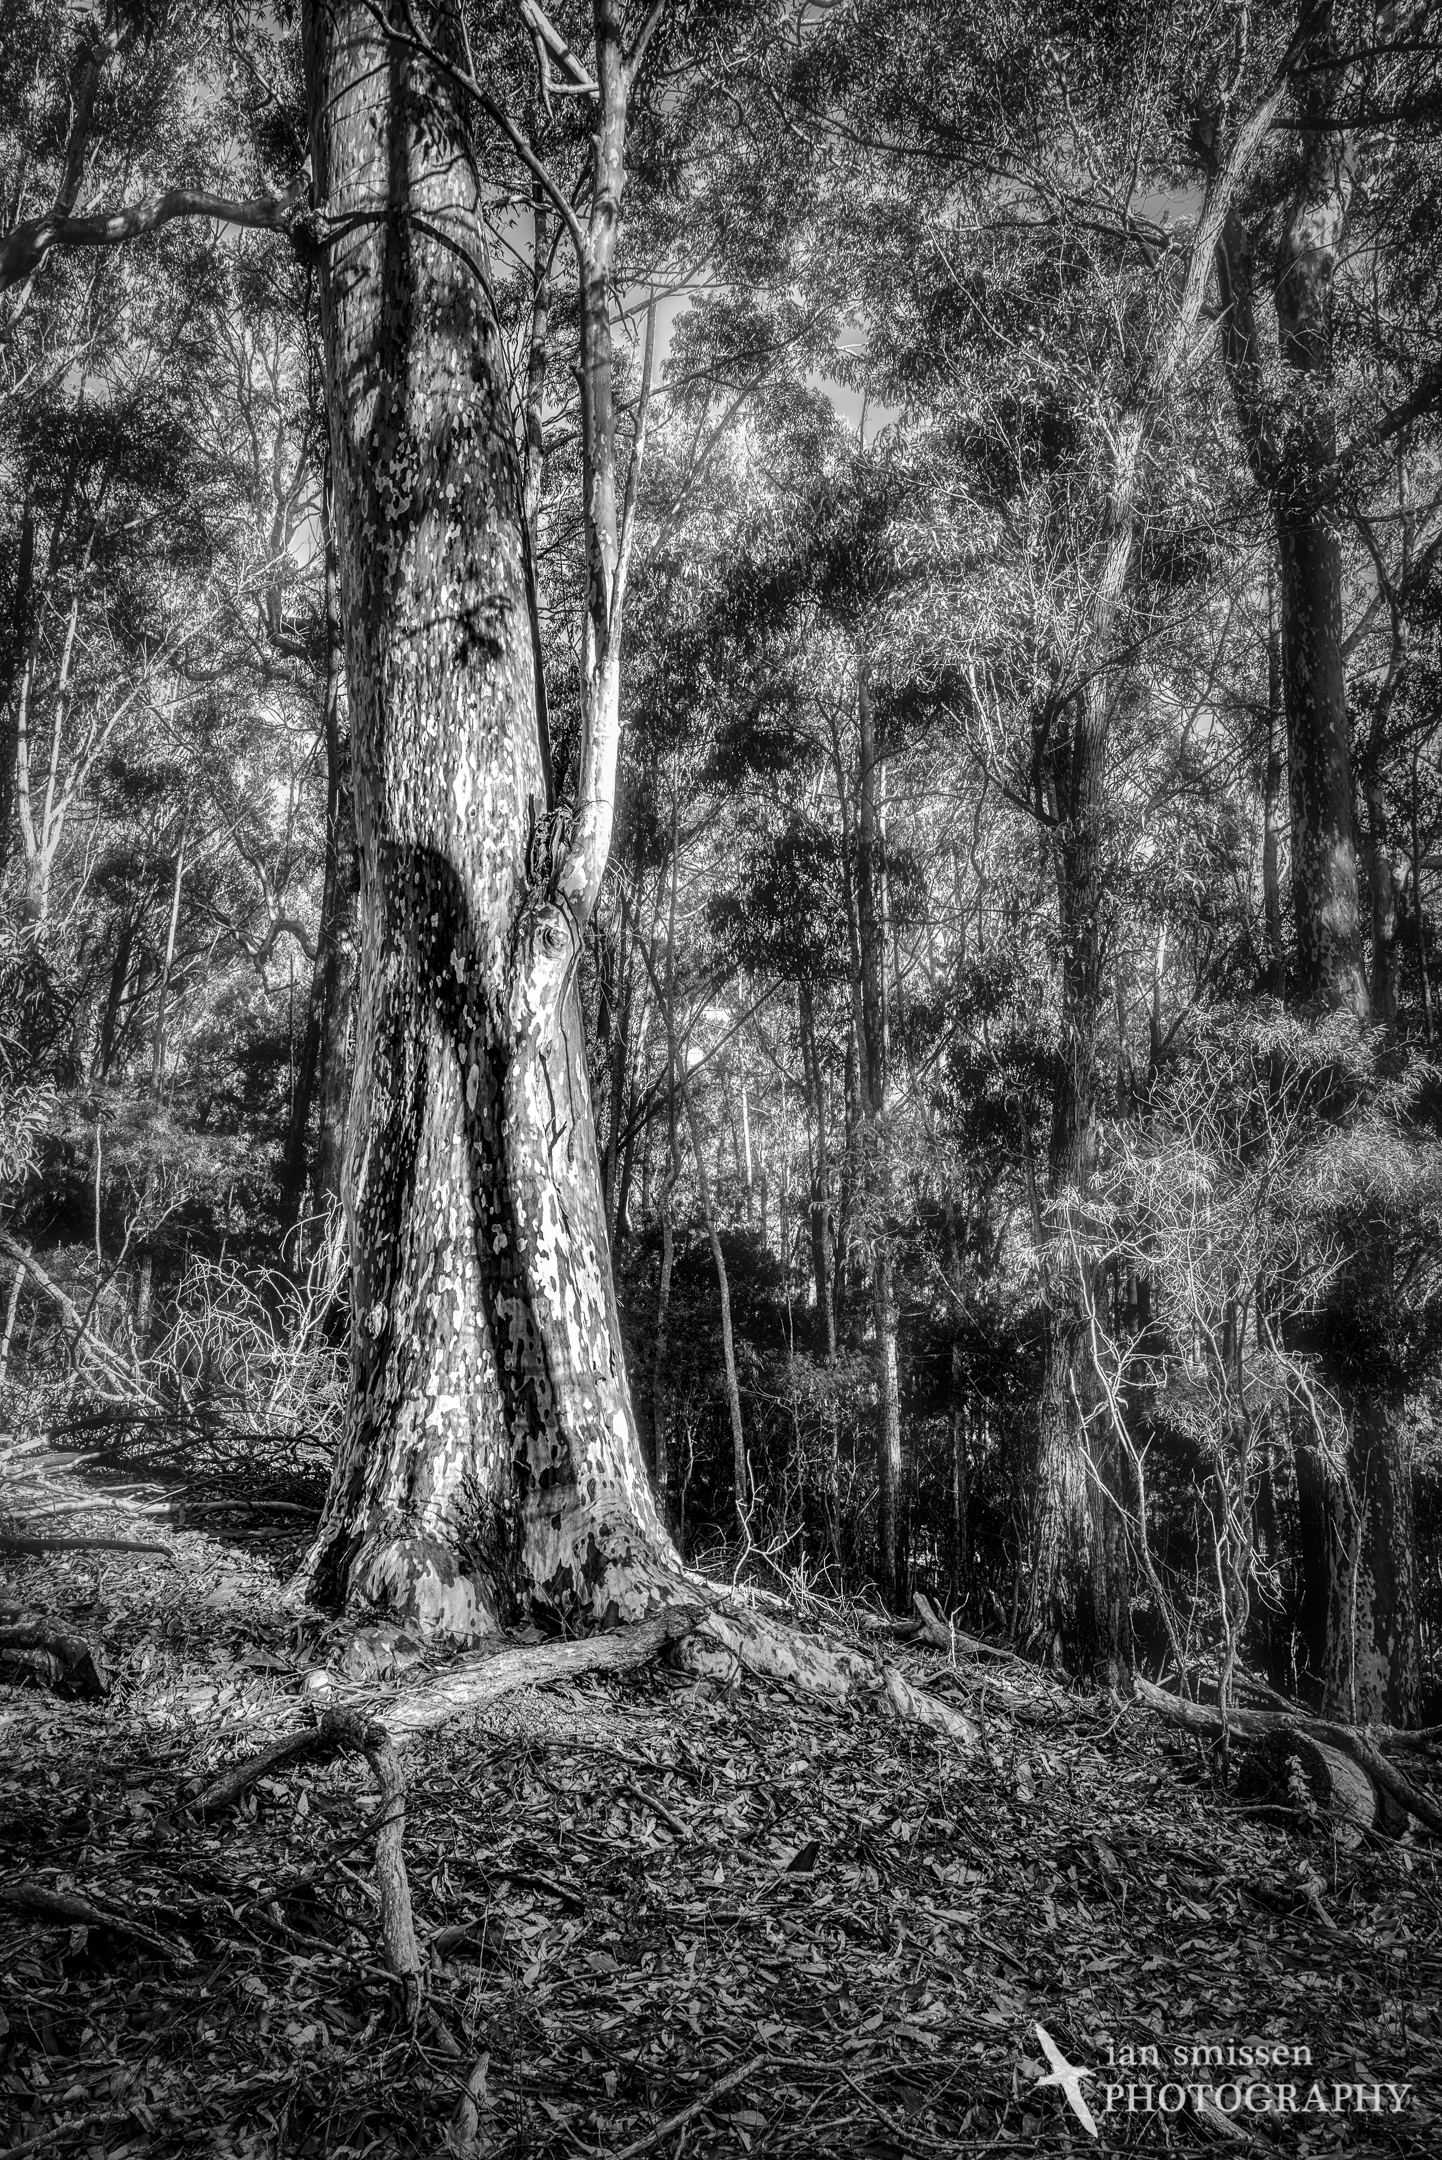 Spotted Gum 29mm, ISO 100, 1/25-0.6 seconds @ f/11, 5-shot merged HDR